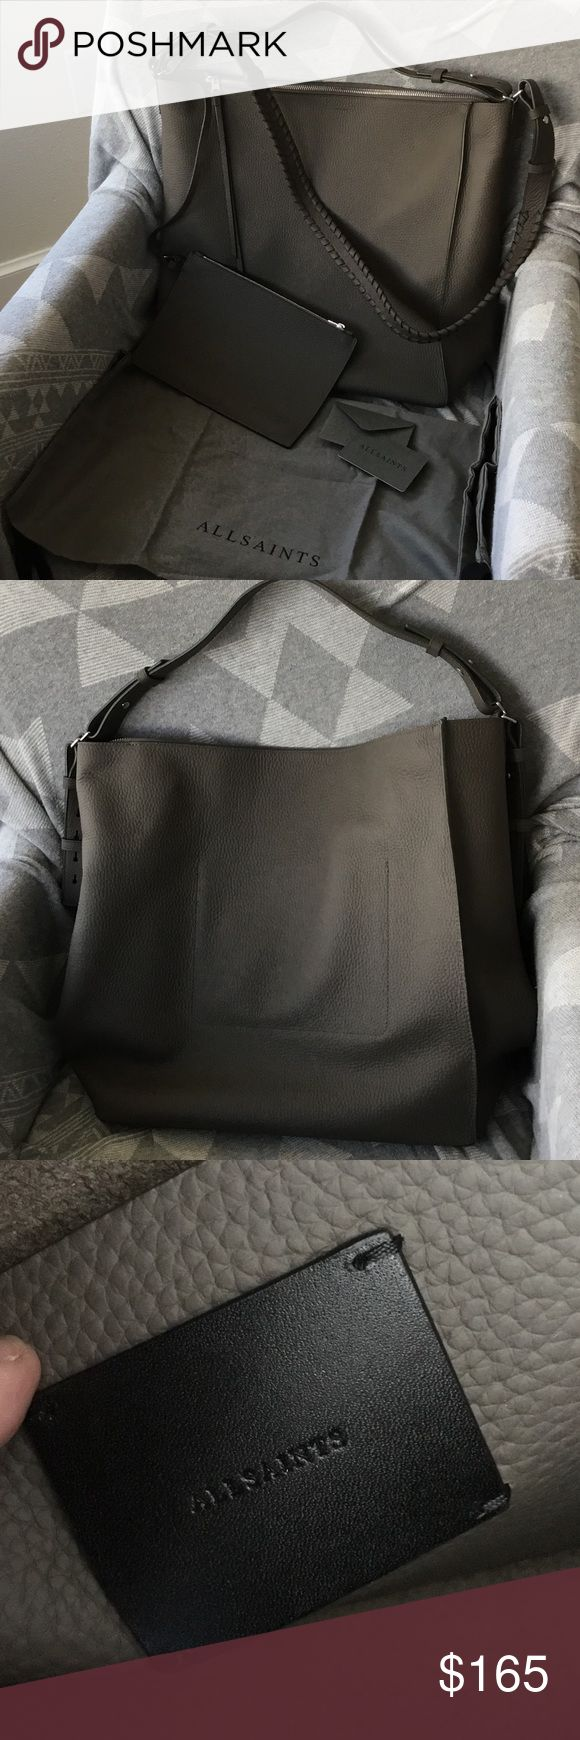 """EUC ALLSAINTS Kita North South Tote EUC ALLSAINTS Kita North South in Mink Grey. I bought this directly from the website, currently available for $348. Has two straps for multiple ways to carry, including crossbody. Both straps can be adjusted or removed. Also comes with a detachable pouch. Beautiful grained taupe grey leather that is super durable. Comes with dust bag and authenticity card. Measurements are 14"""" h, 13 1/4"""" w, 5 1/2"""" d. Used twice and realized it was to large for me. All…"""